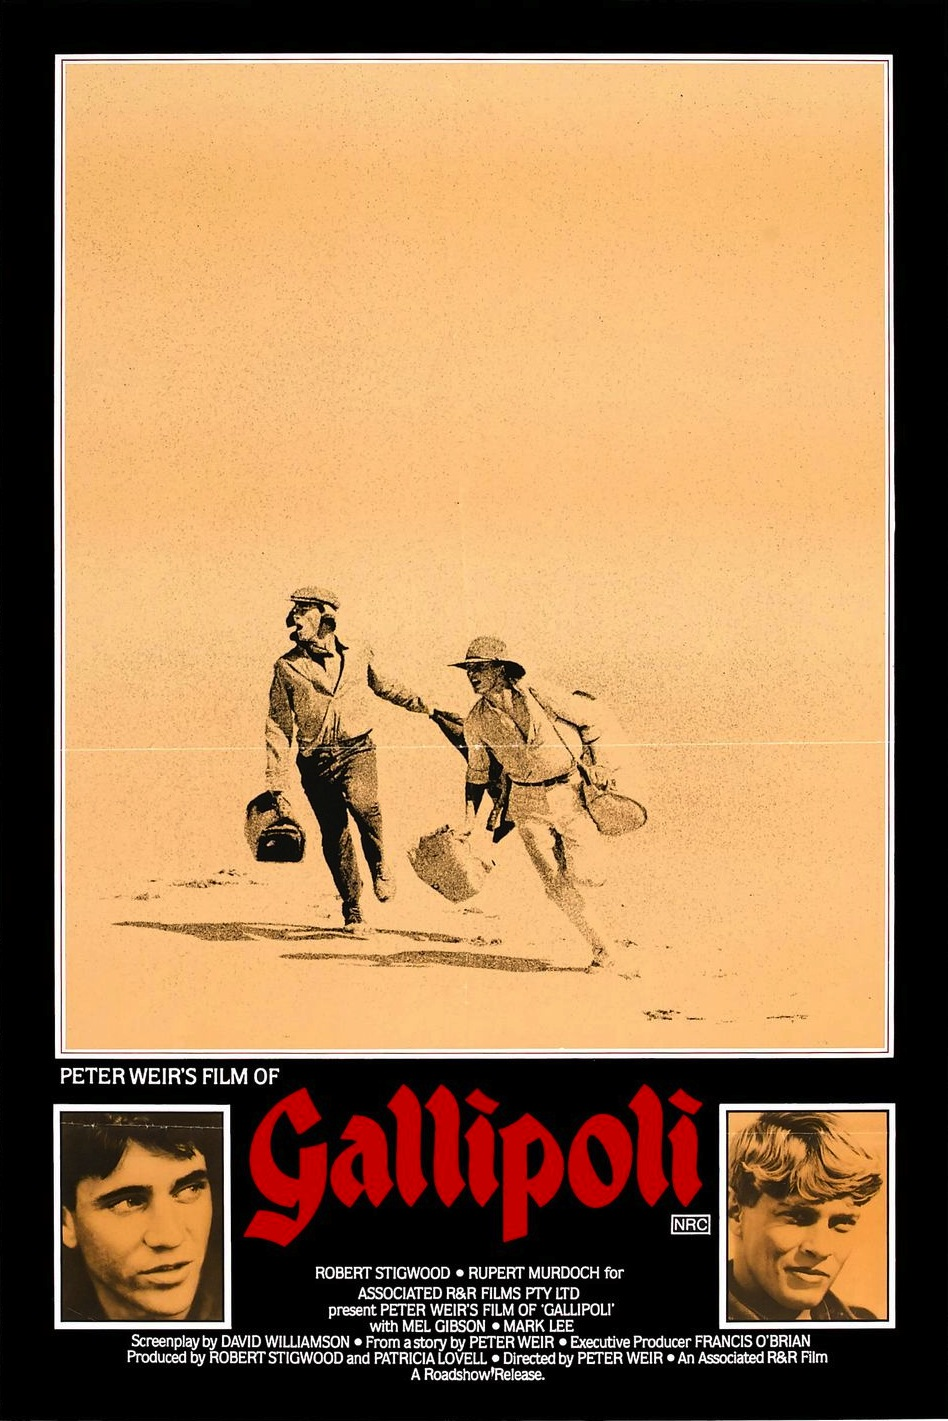 "Google ""Gallipoli"" and the number three result is the  1981 film  starring a young Mel Gibson when his Aussie accent was still strong. The campaign continues to figure prominently in Australian culture, regularly serving as the subject of films and books. Most recently, Russell Crowe starred in   The Water Diviner  , where he played a farmer searching for three missing sons who fought in Gallipoli."